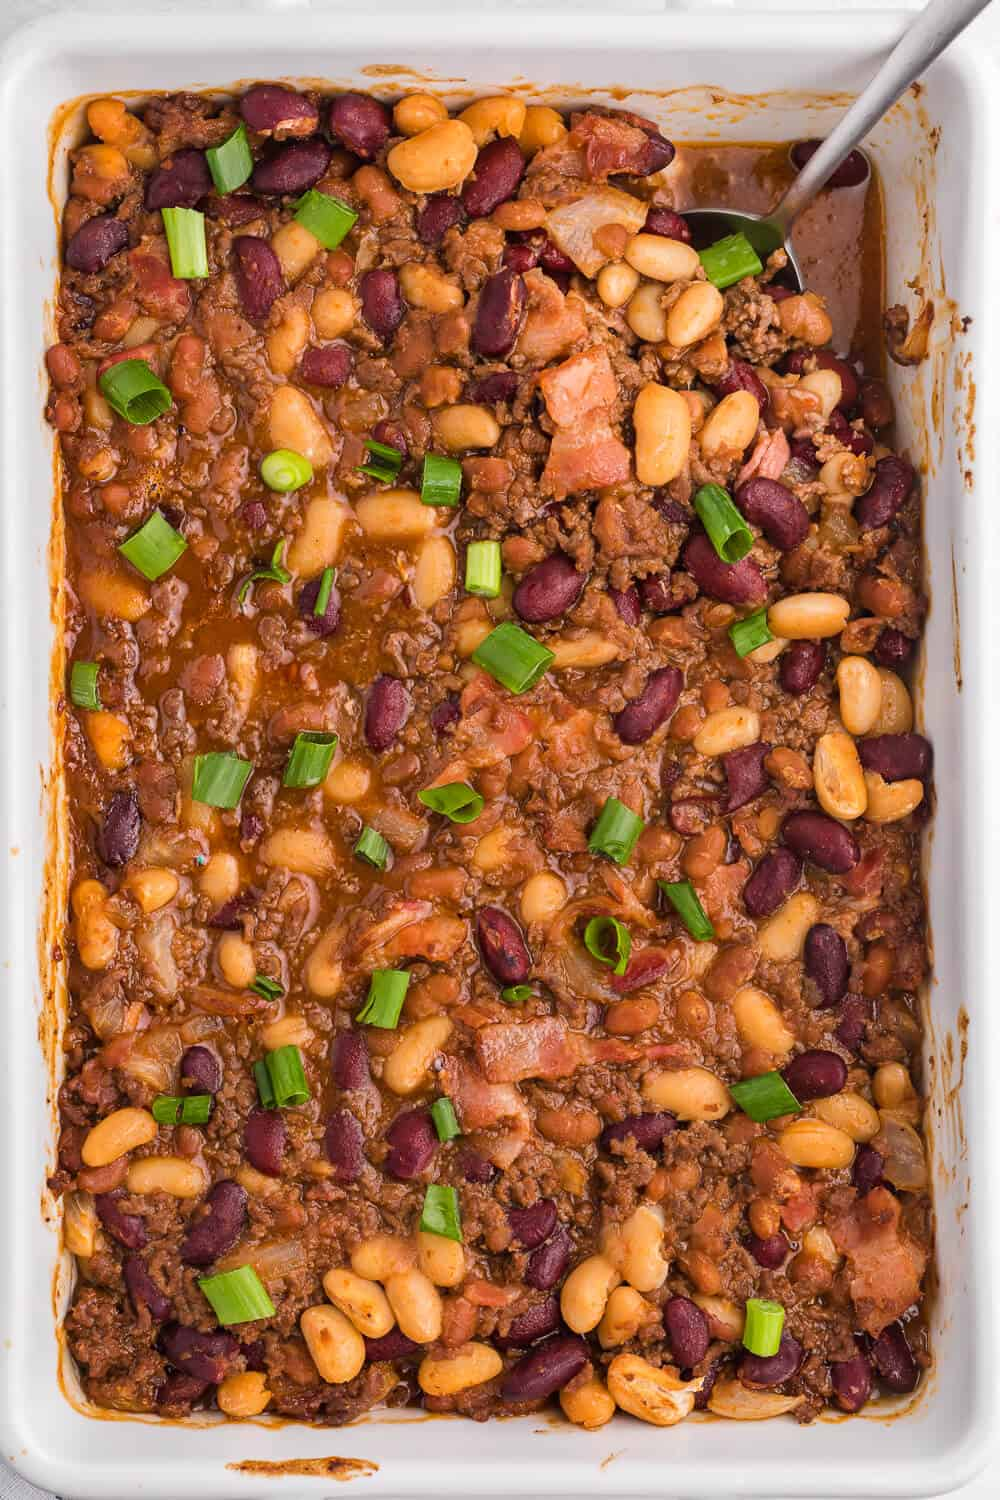 bean casserole in a casserole pan with a serving spoon